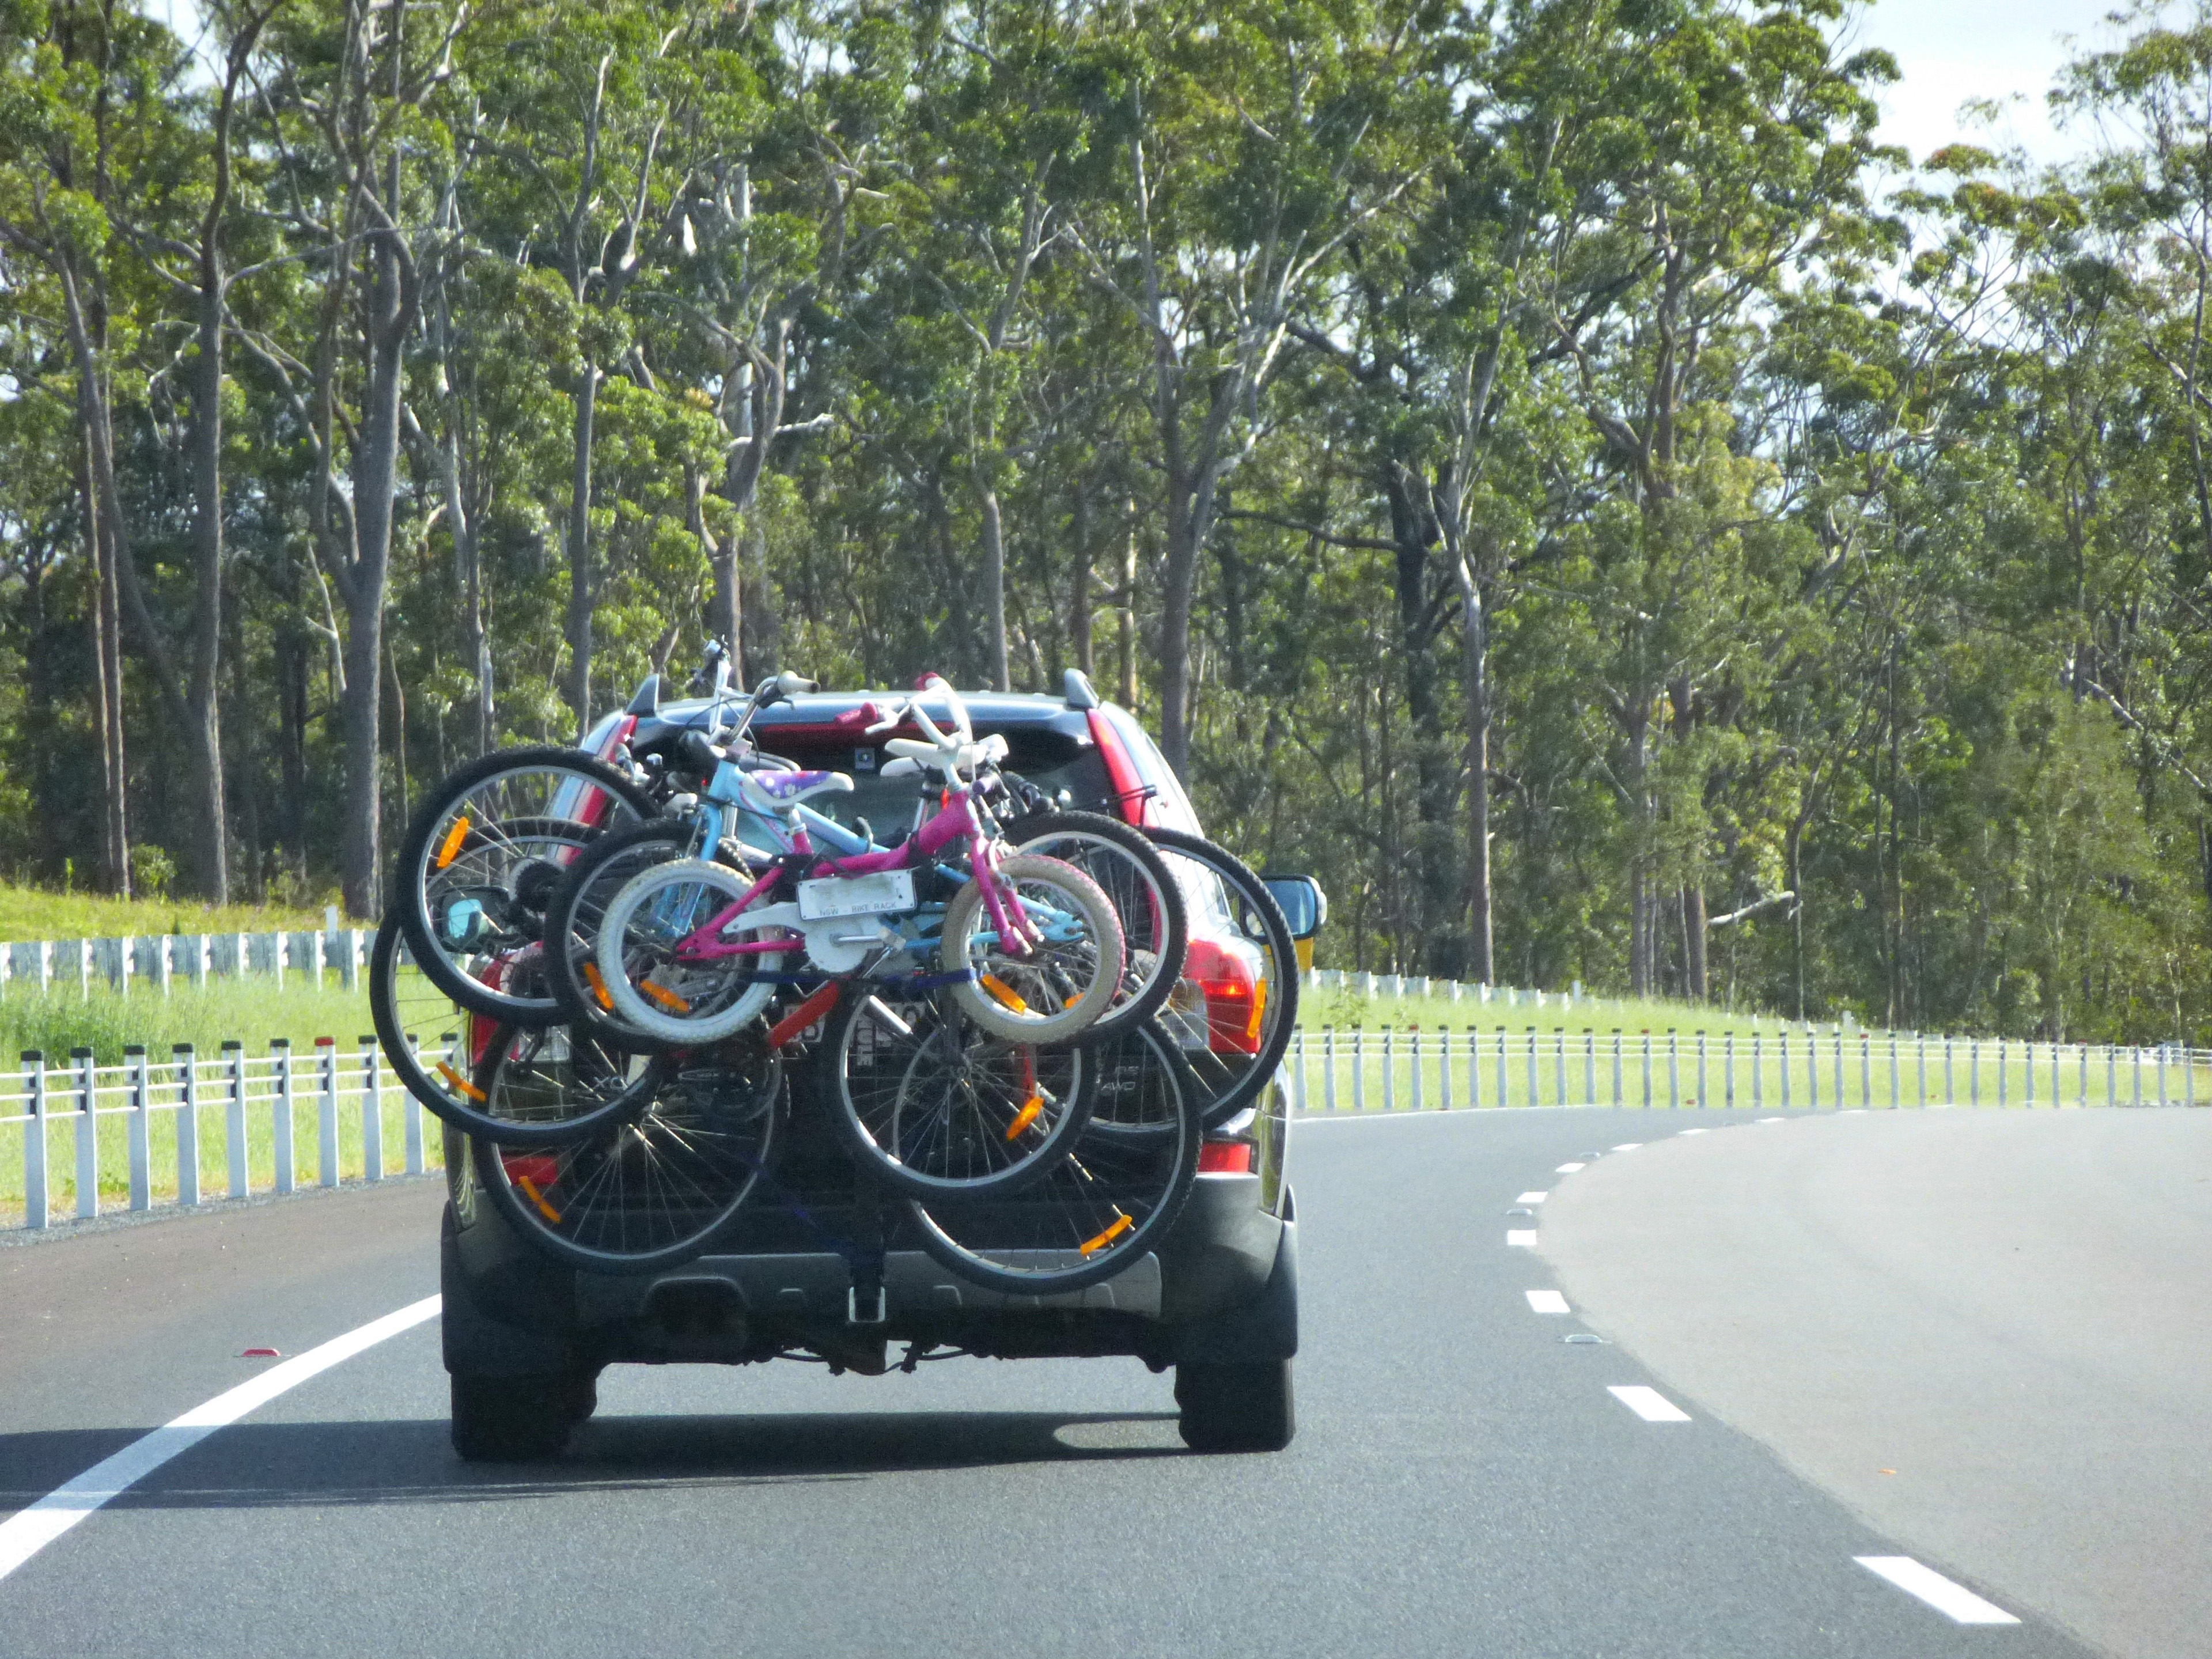 Car transporting bicycles for a cycle tour or weekend family outing with bicycles of all sizes strapped to the carrier as it travels along the motorway